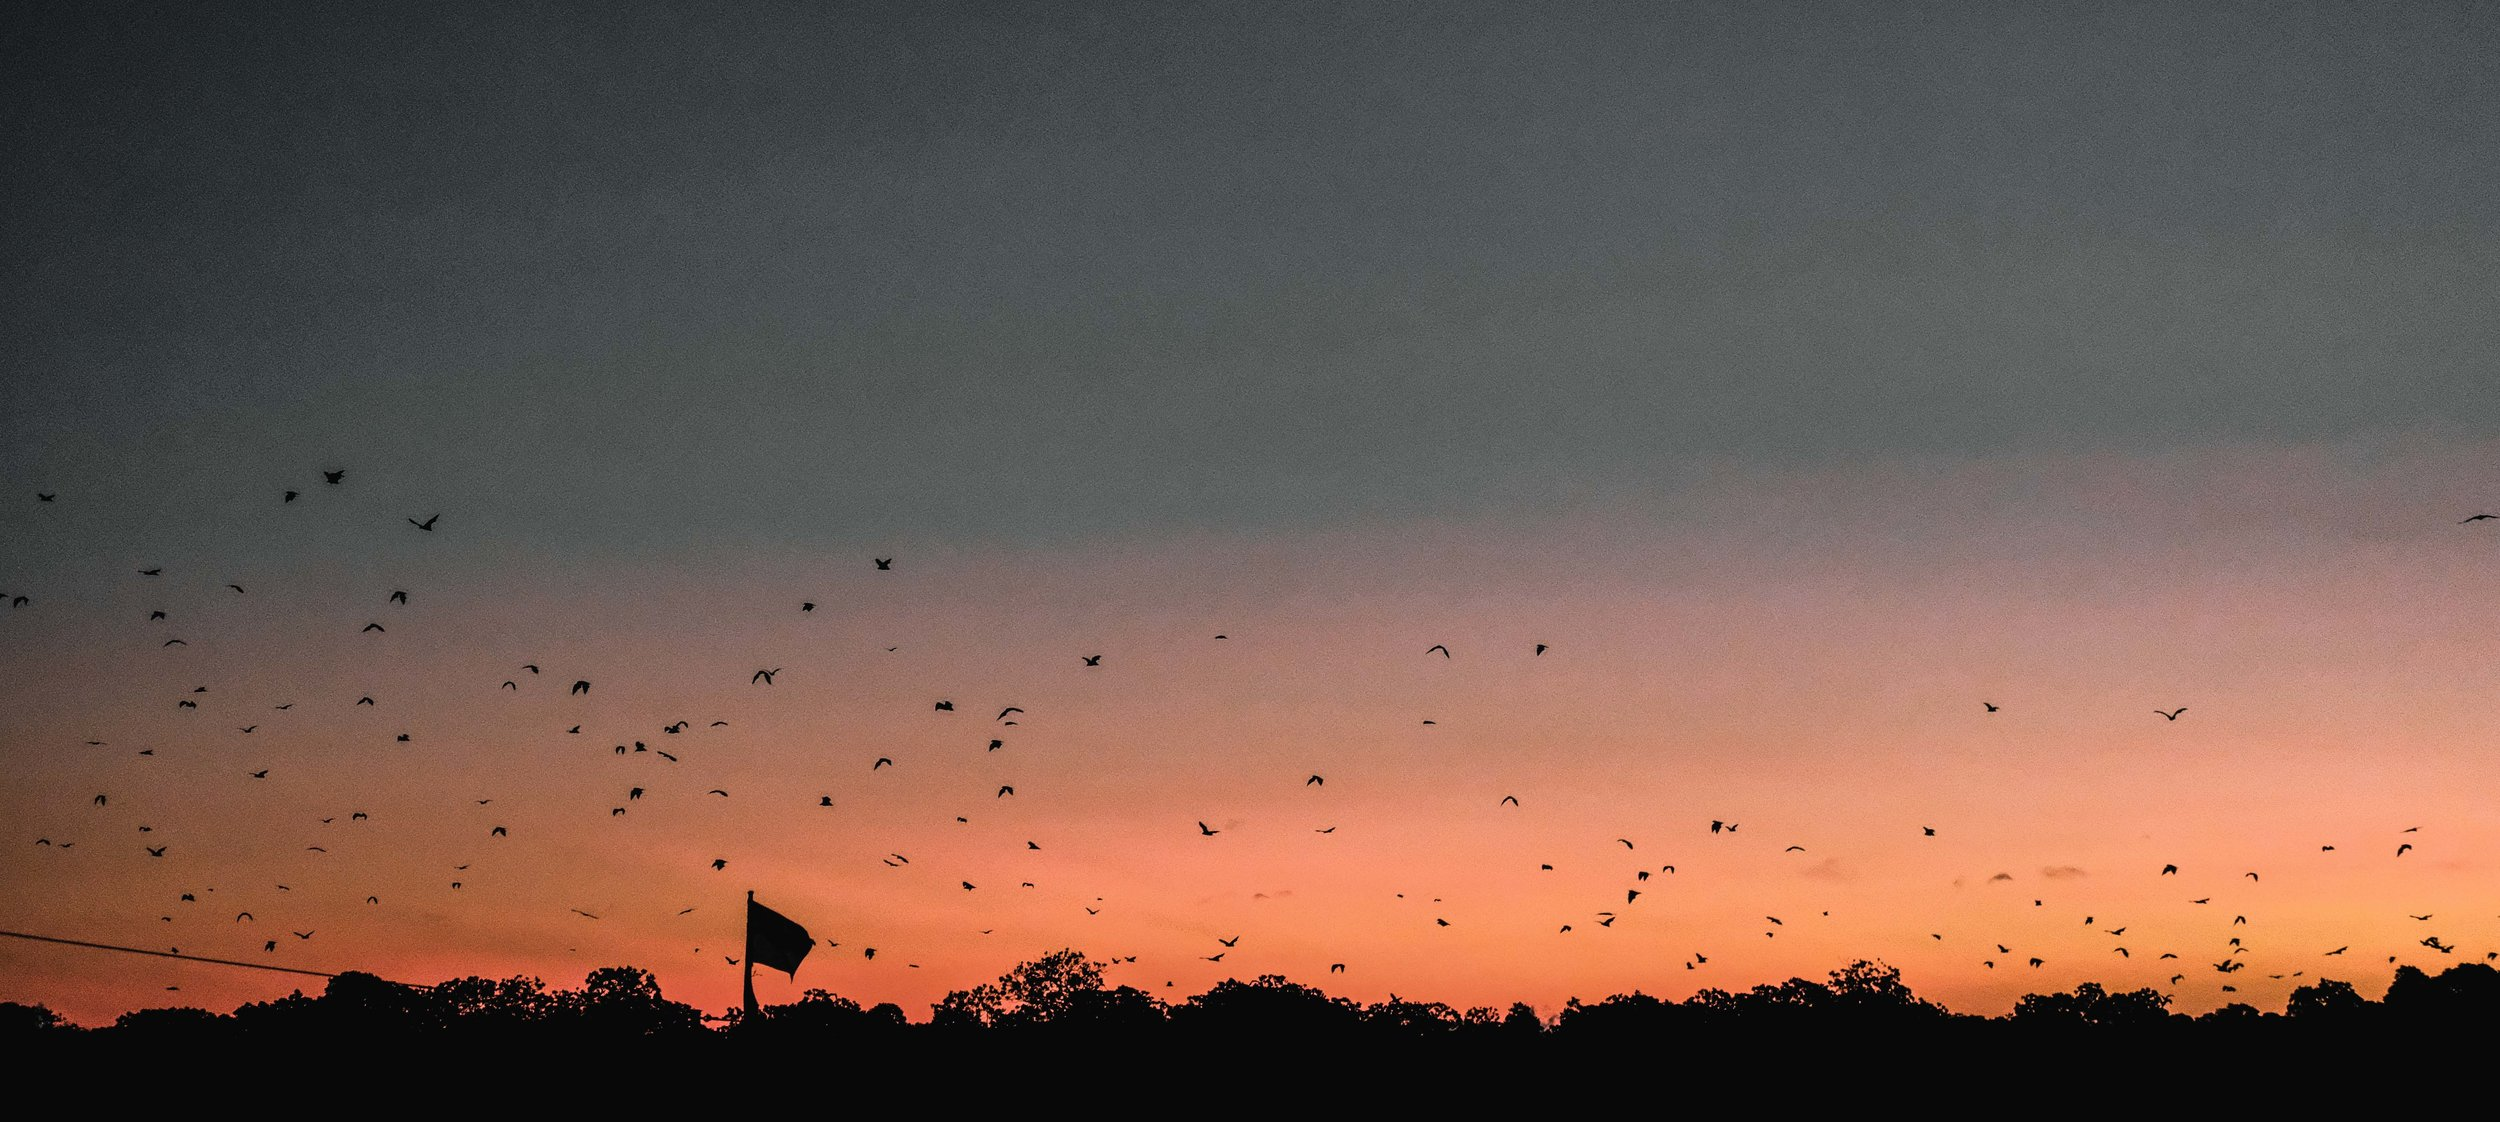 Thousands of flying foxes take off from the mangroves on Kalong Island, winging their way towards the mainland in search of food